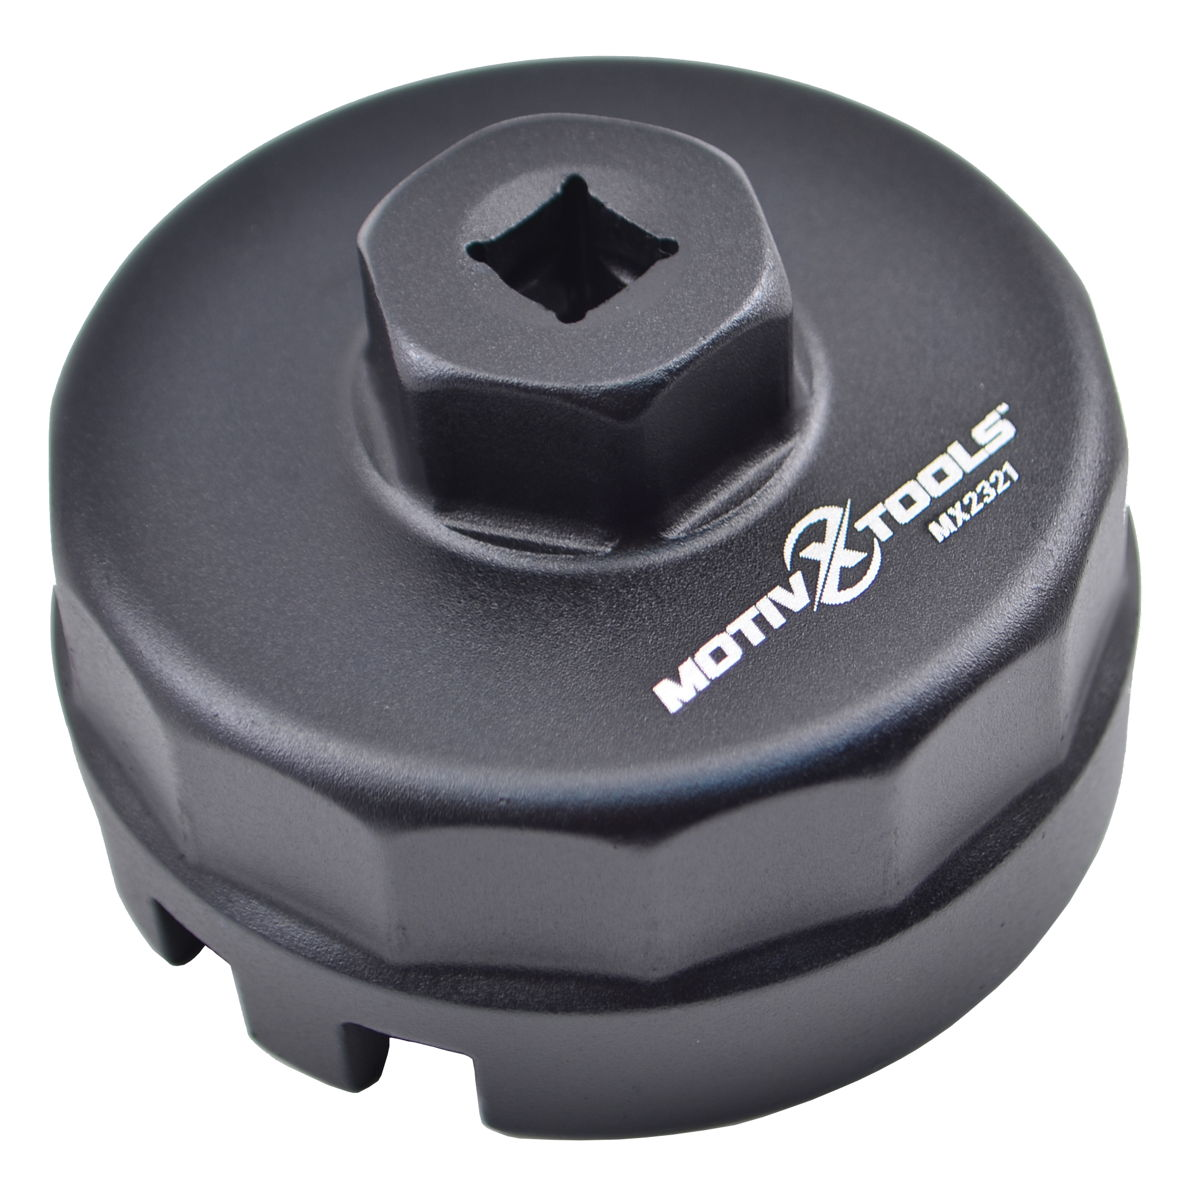 Prius oil filter wrench motivx tools your toyota prius oil change just got a whole lot easier solutioingenieria Choice Image